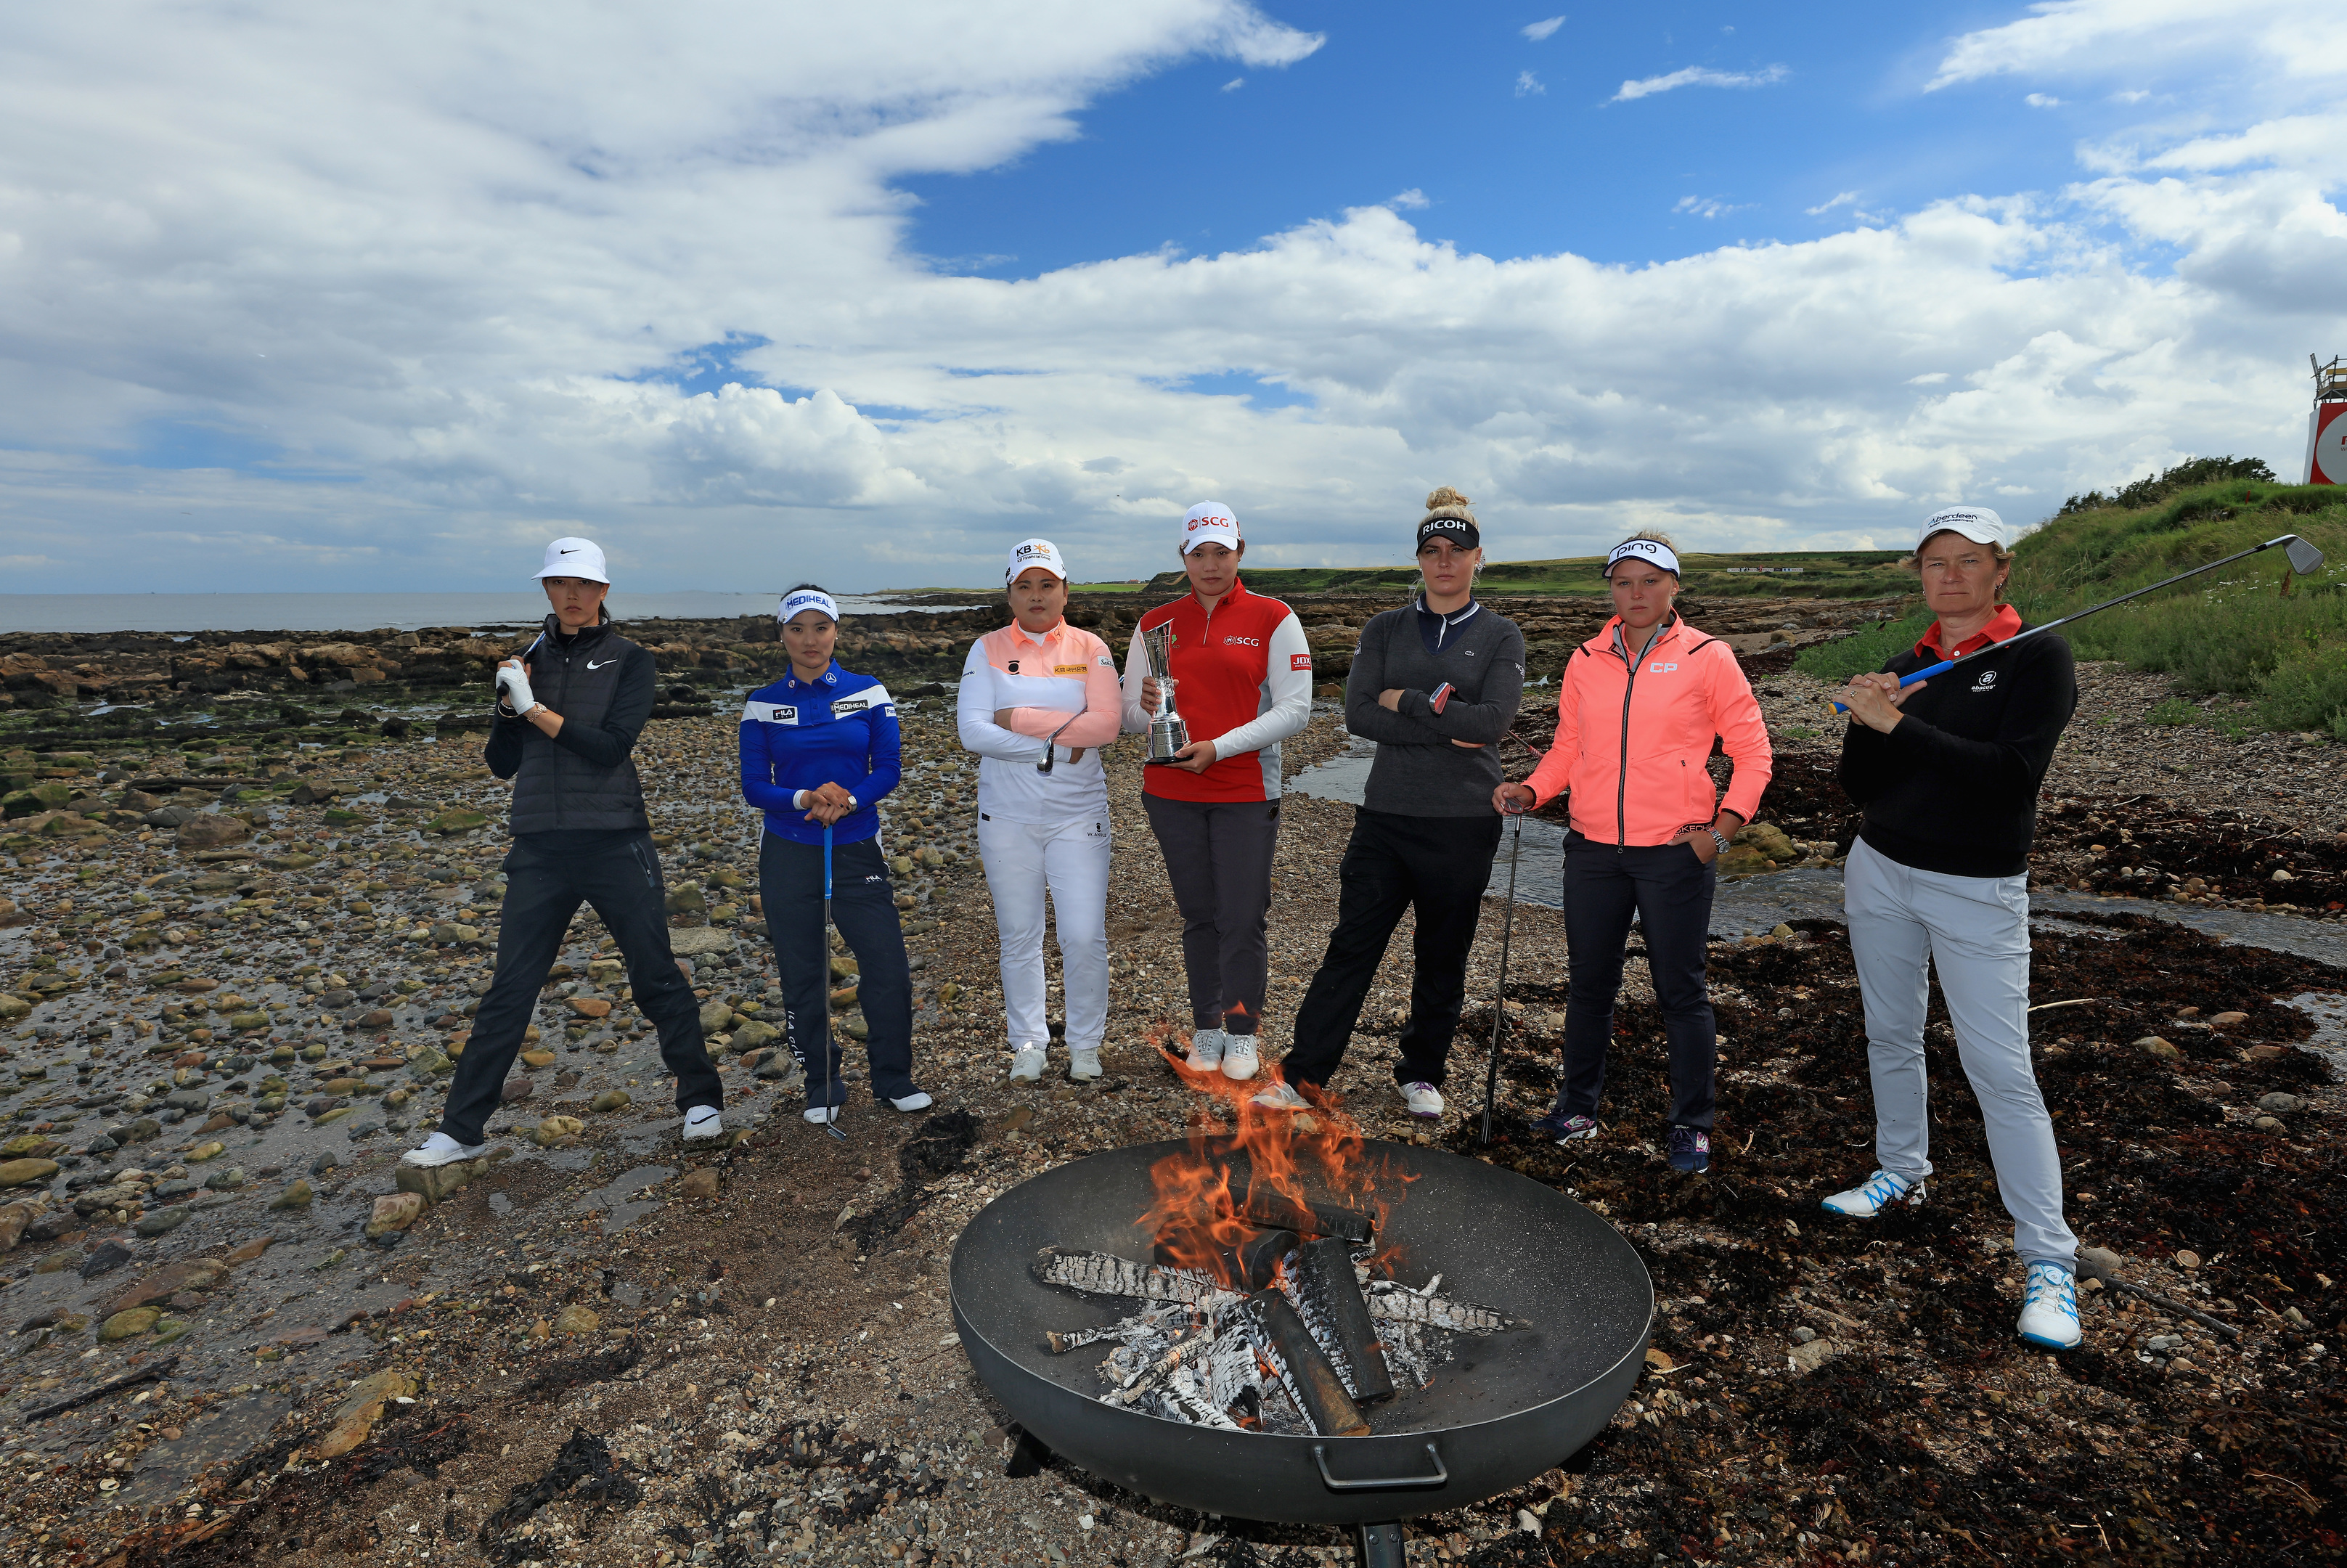 Michelle Wie, So Yeon Ryu, Inbee Park, Ariya Jutanugarn, Charley Hull, Brooke Henderson, and Catriona Matthew at the official photocall for the Ricoh Women's British Open at Kingsbarns.